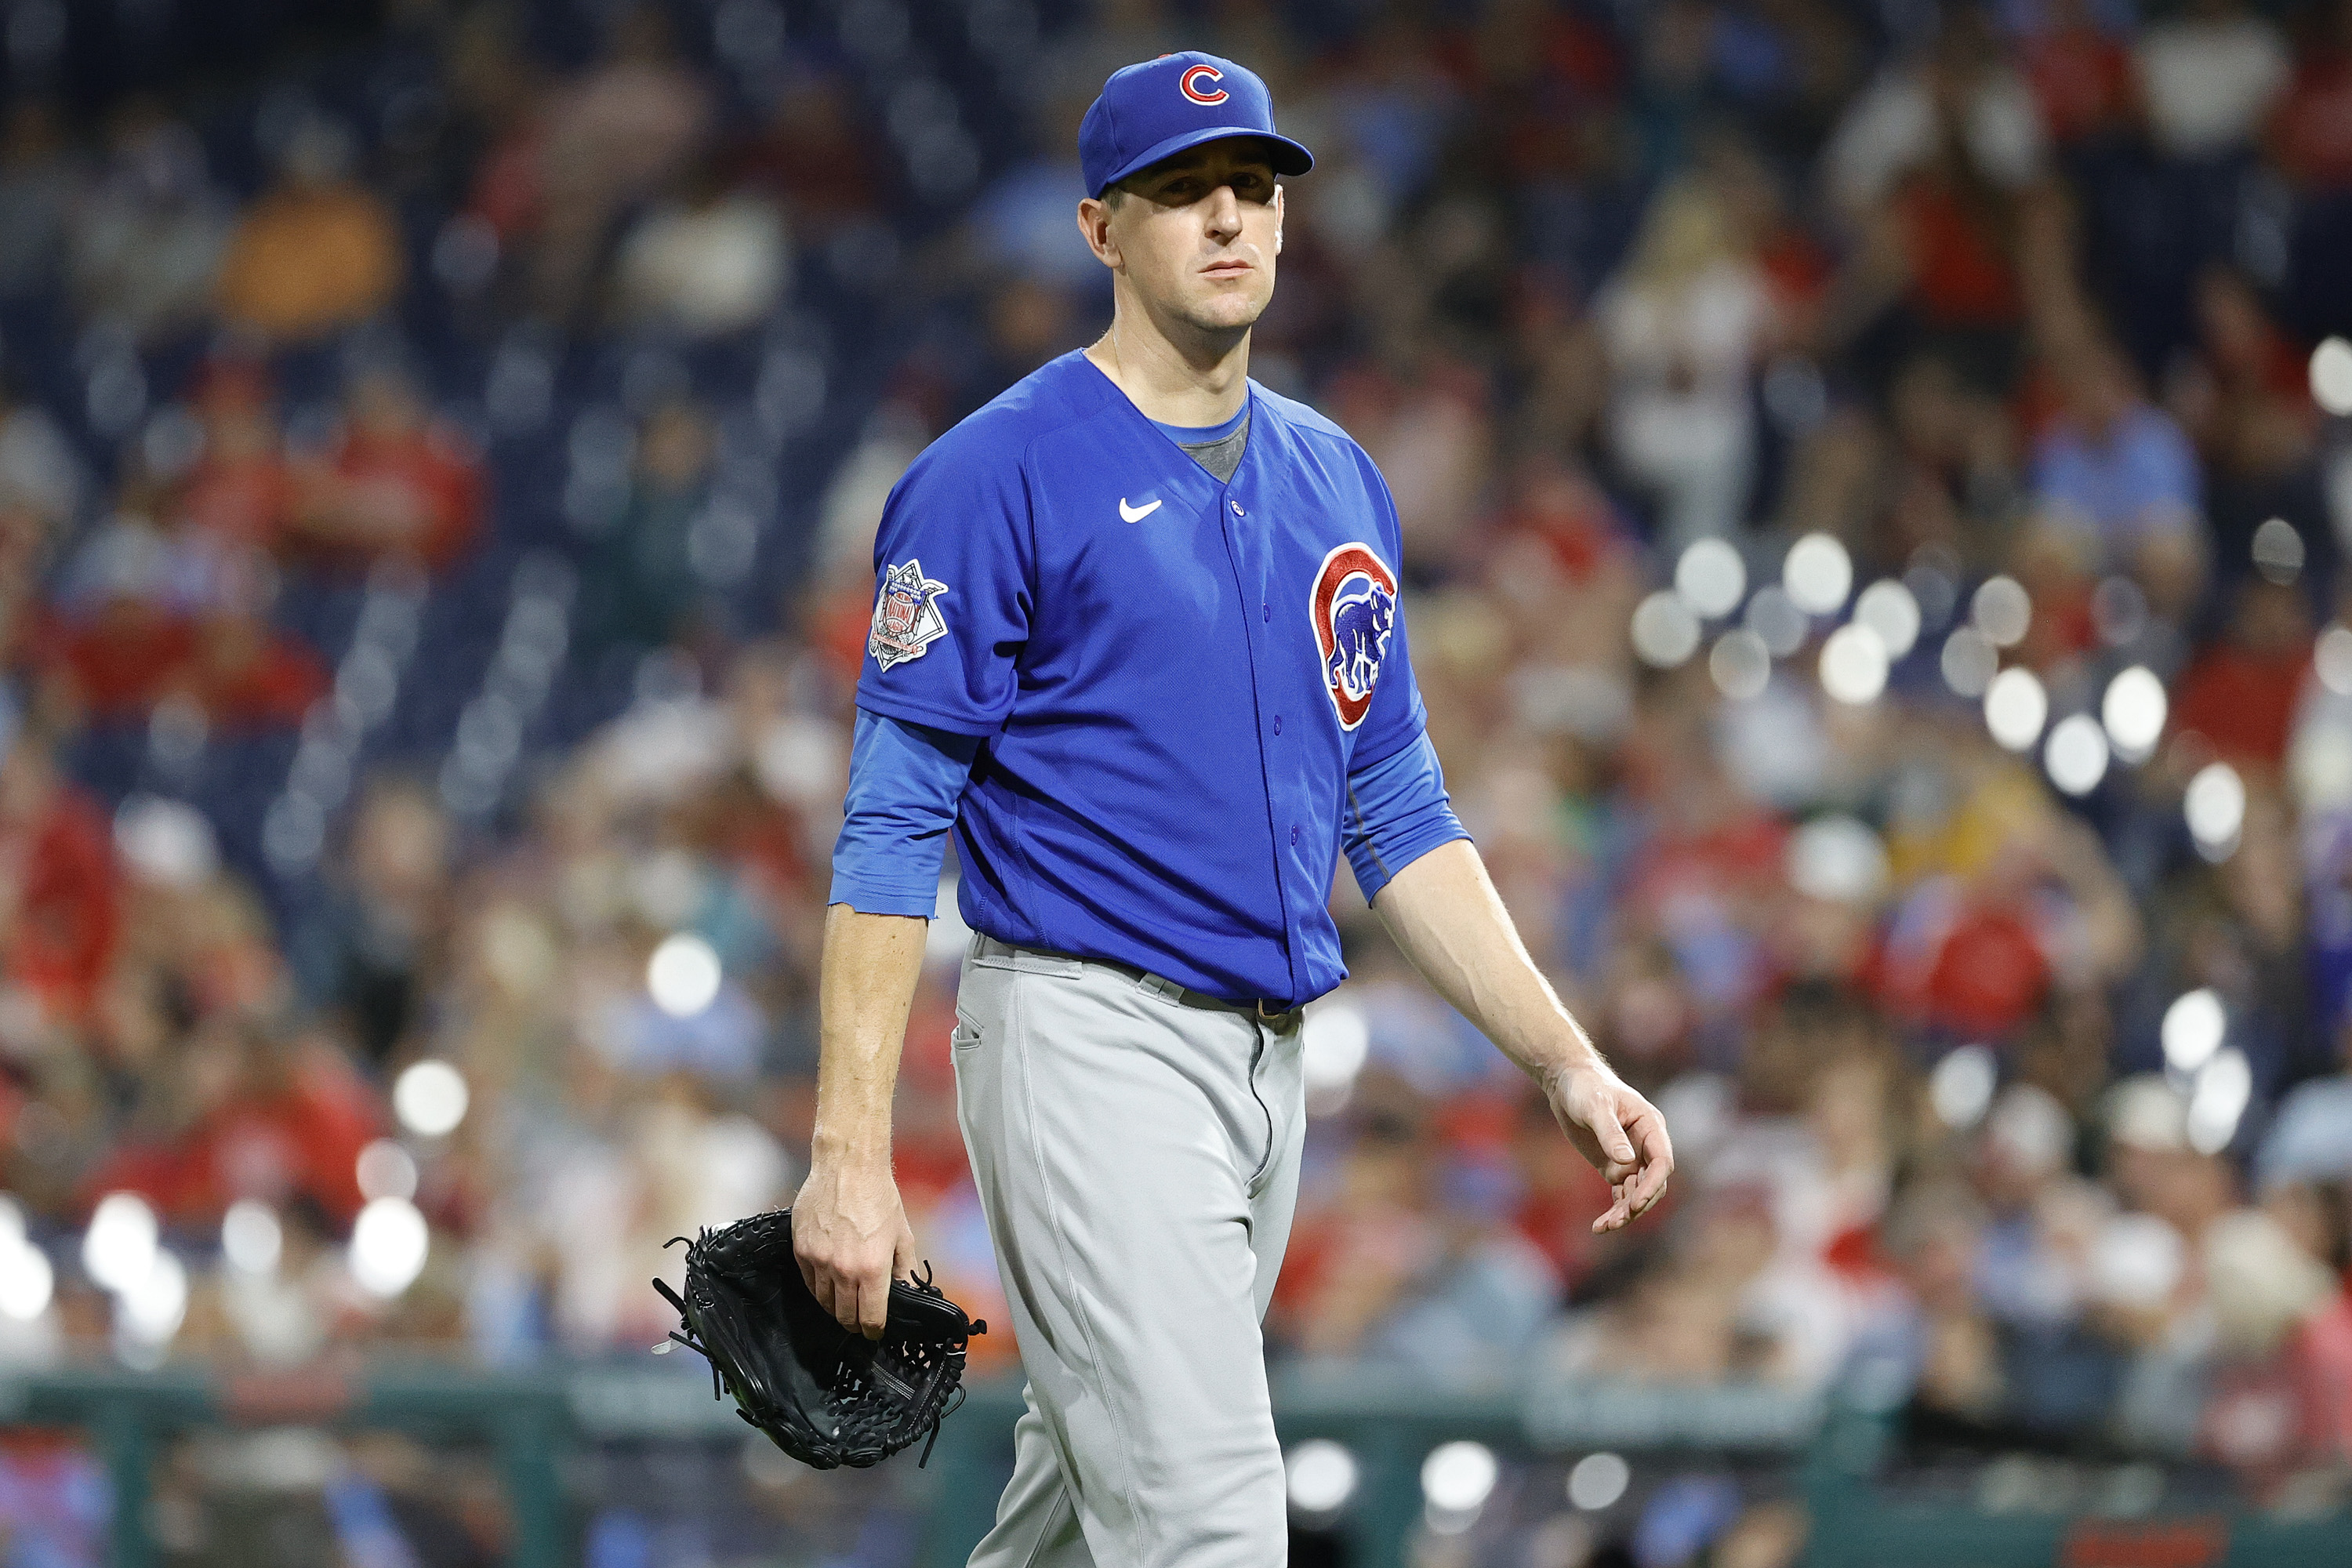 """""""I just have to be much better for this team going forward,"""" Cubs starter Kyle Hendricks said. """"We got two weeks left. It's just working on my pitches, get the confidence back a little bit."""""""